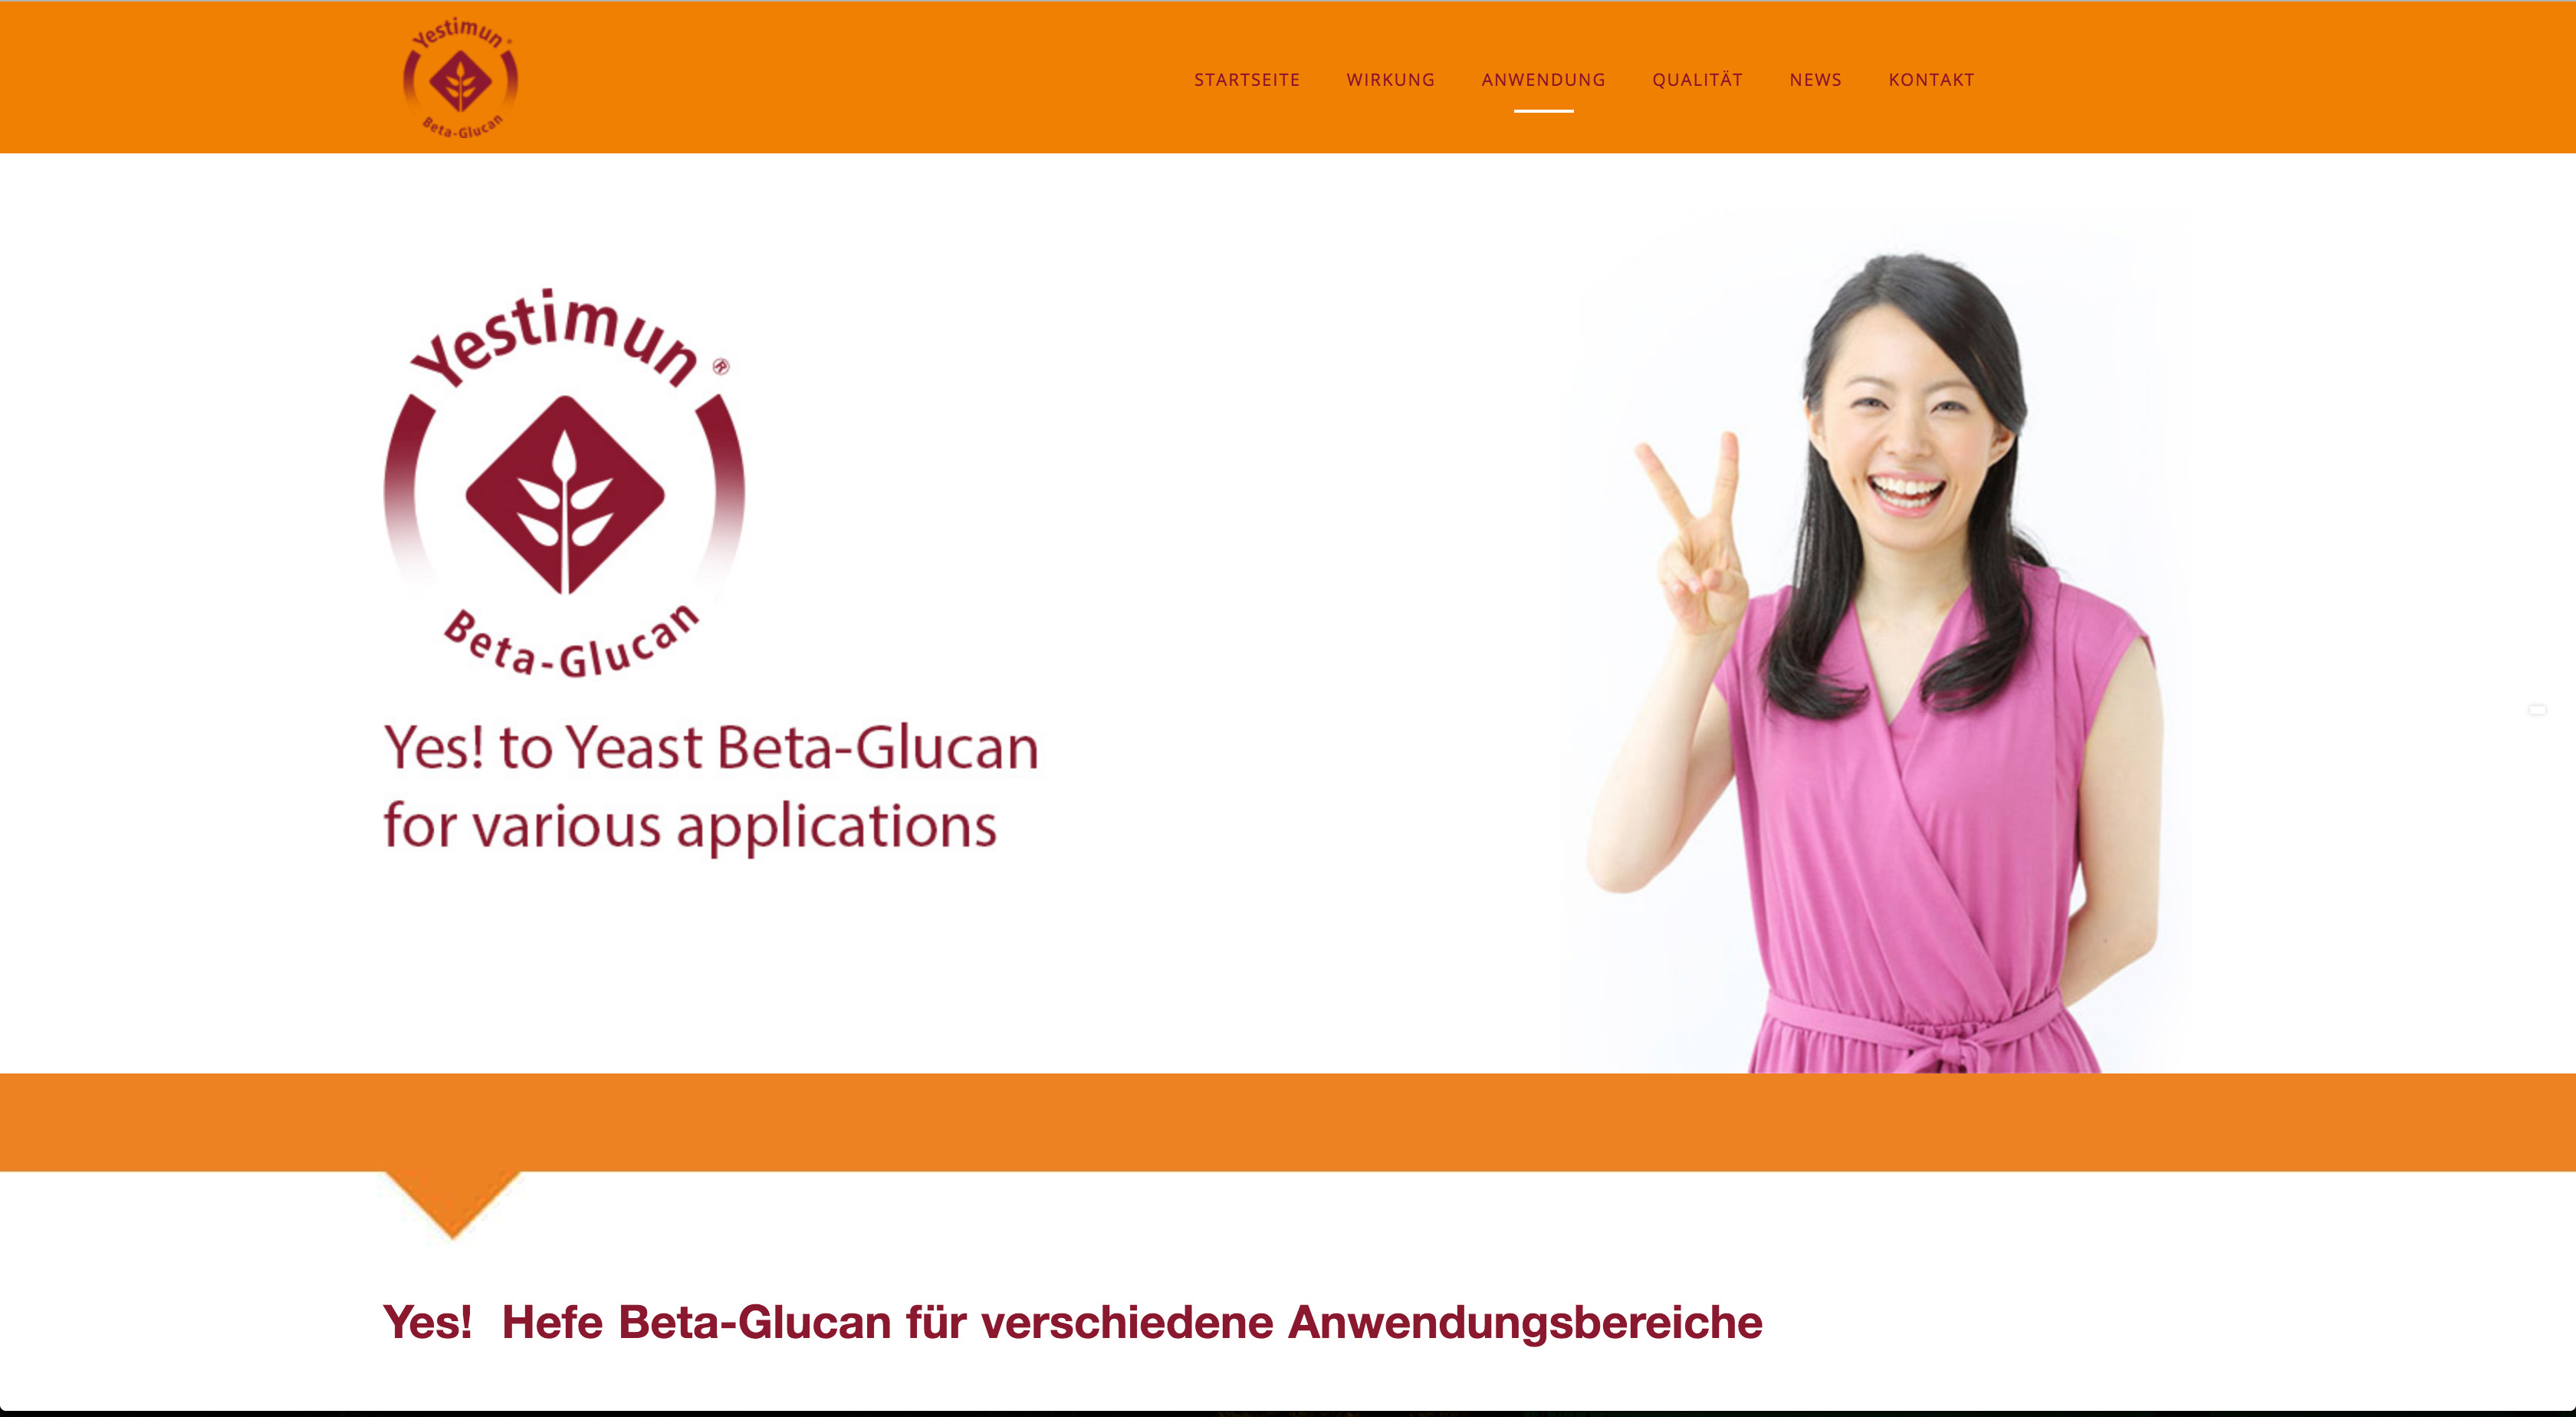 Yestimun® Webdesign, redesign, webseite, responsive webdesign, mobile webdesign, wordpress, multi language, waldbrand media, 2strom agentur, Essen, ruhrgebiet, bierhefe